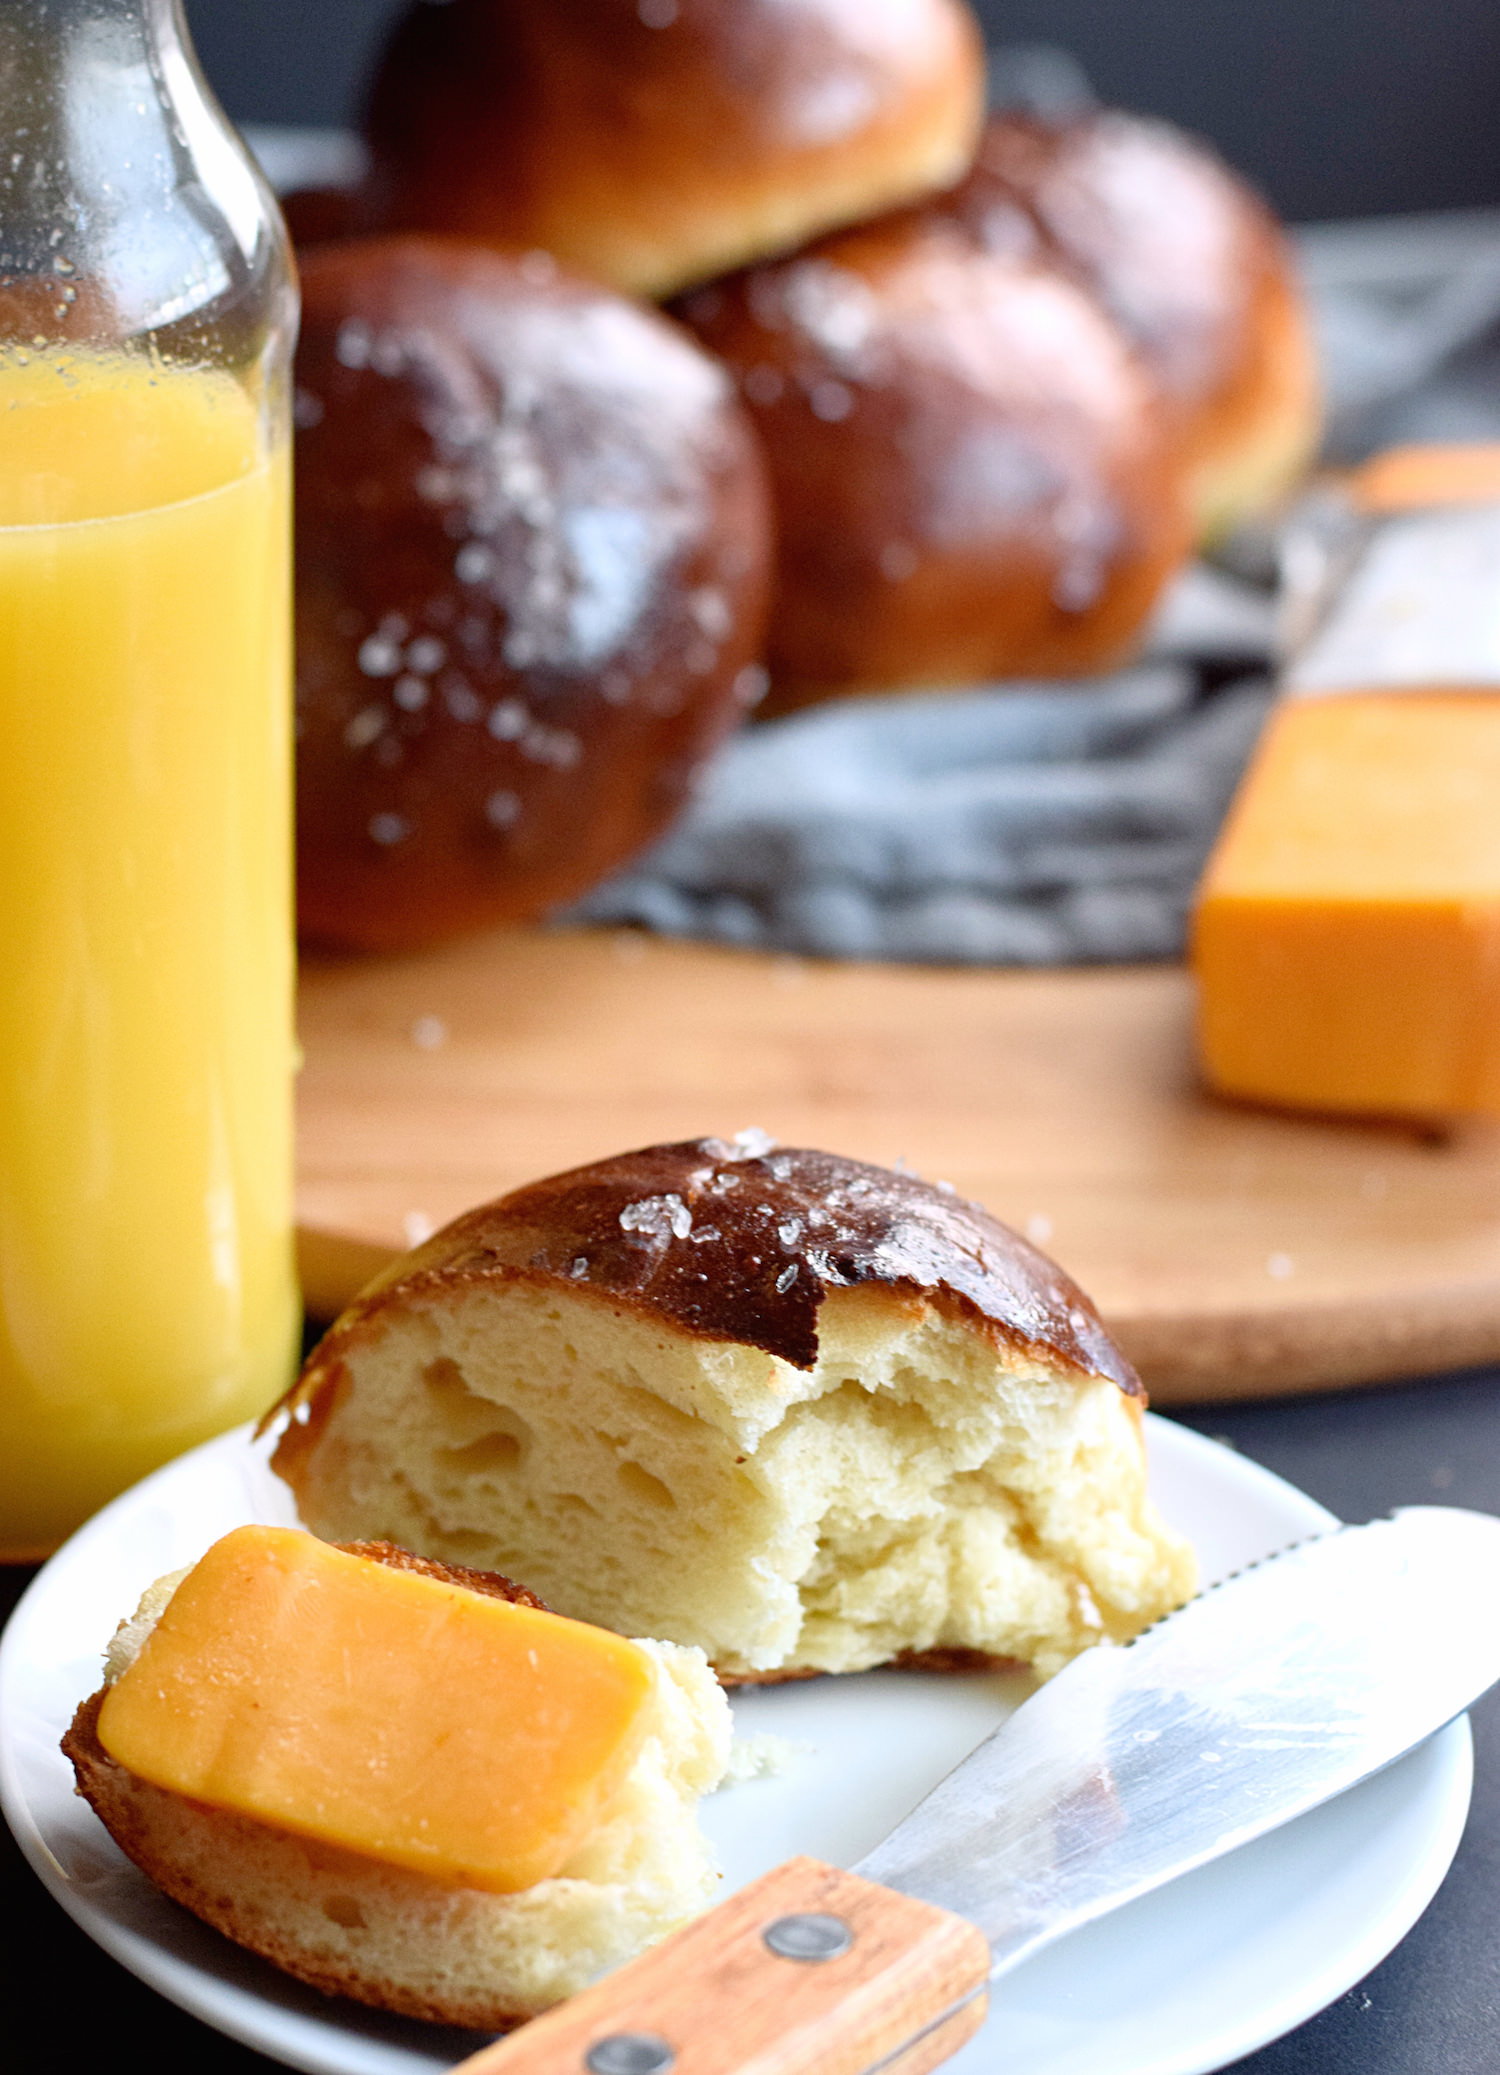 Cheddar Soft Pretzel Buns – soft, fluffy, pretzel rolls filled with cheddar cheese and brushed with melted butter. So, so good!   trufflesandtrends.com